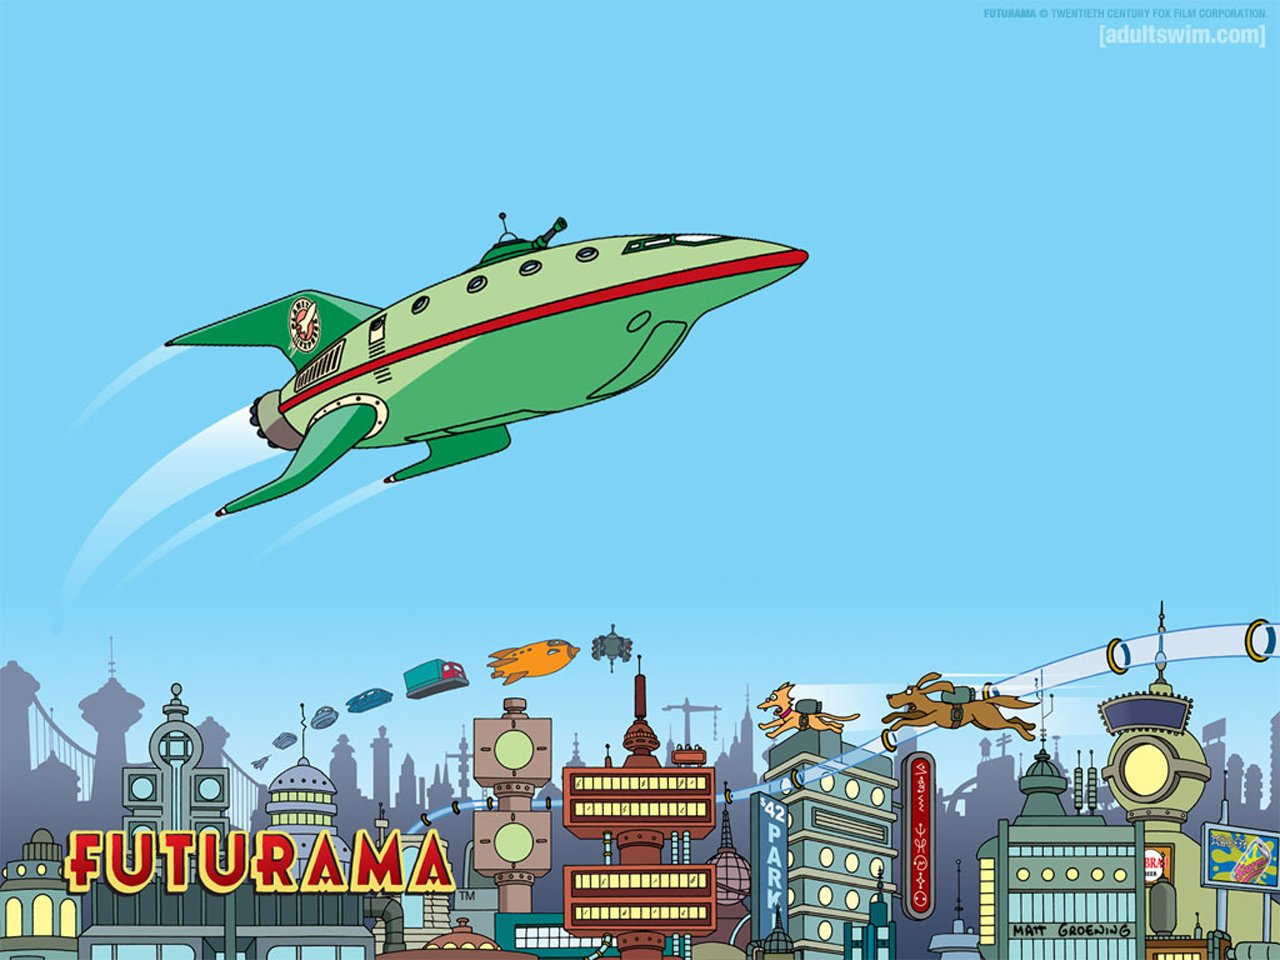 Futurama will be back in the form of a game for iPhone and iPad